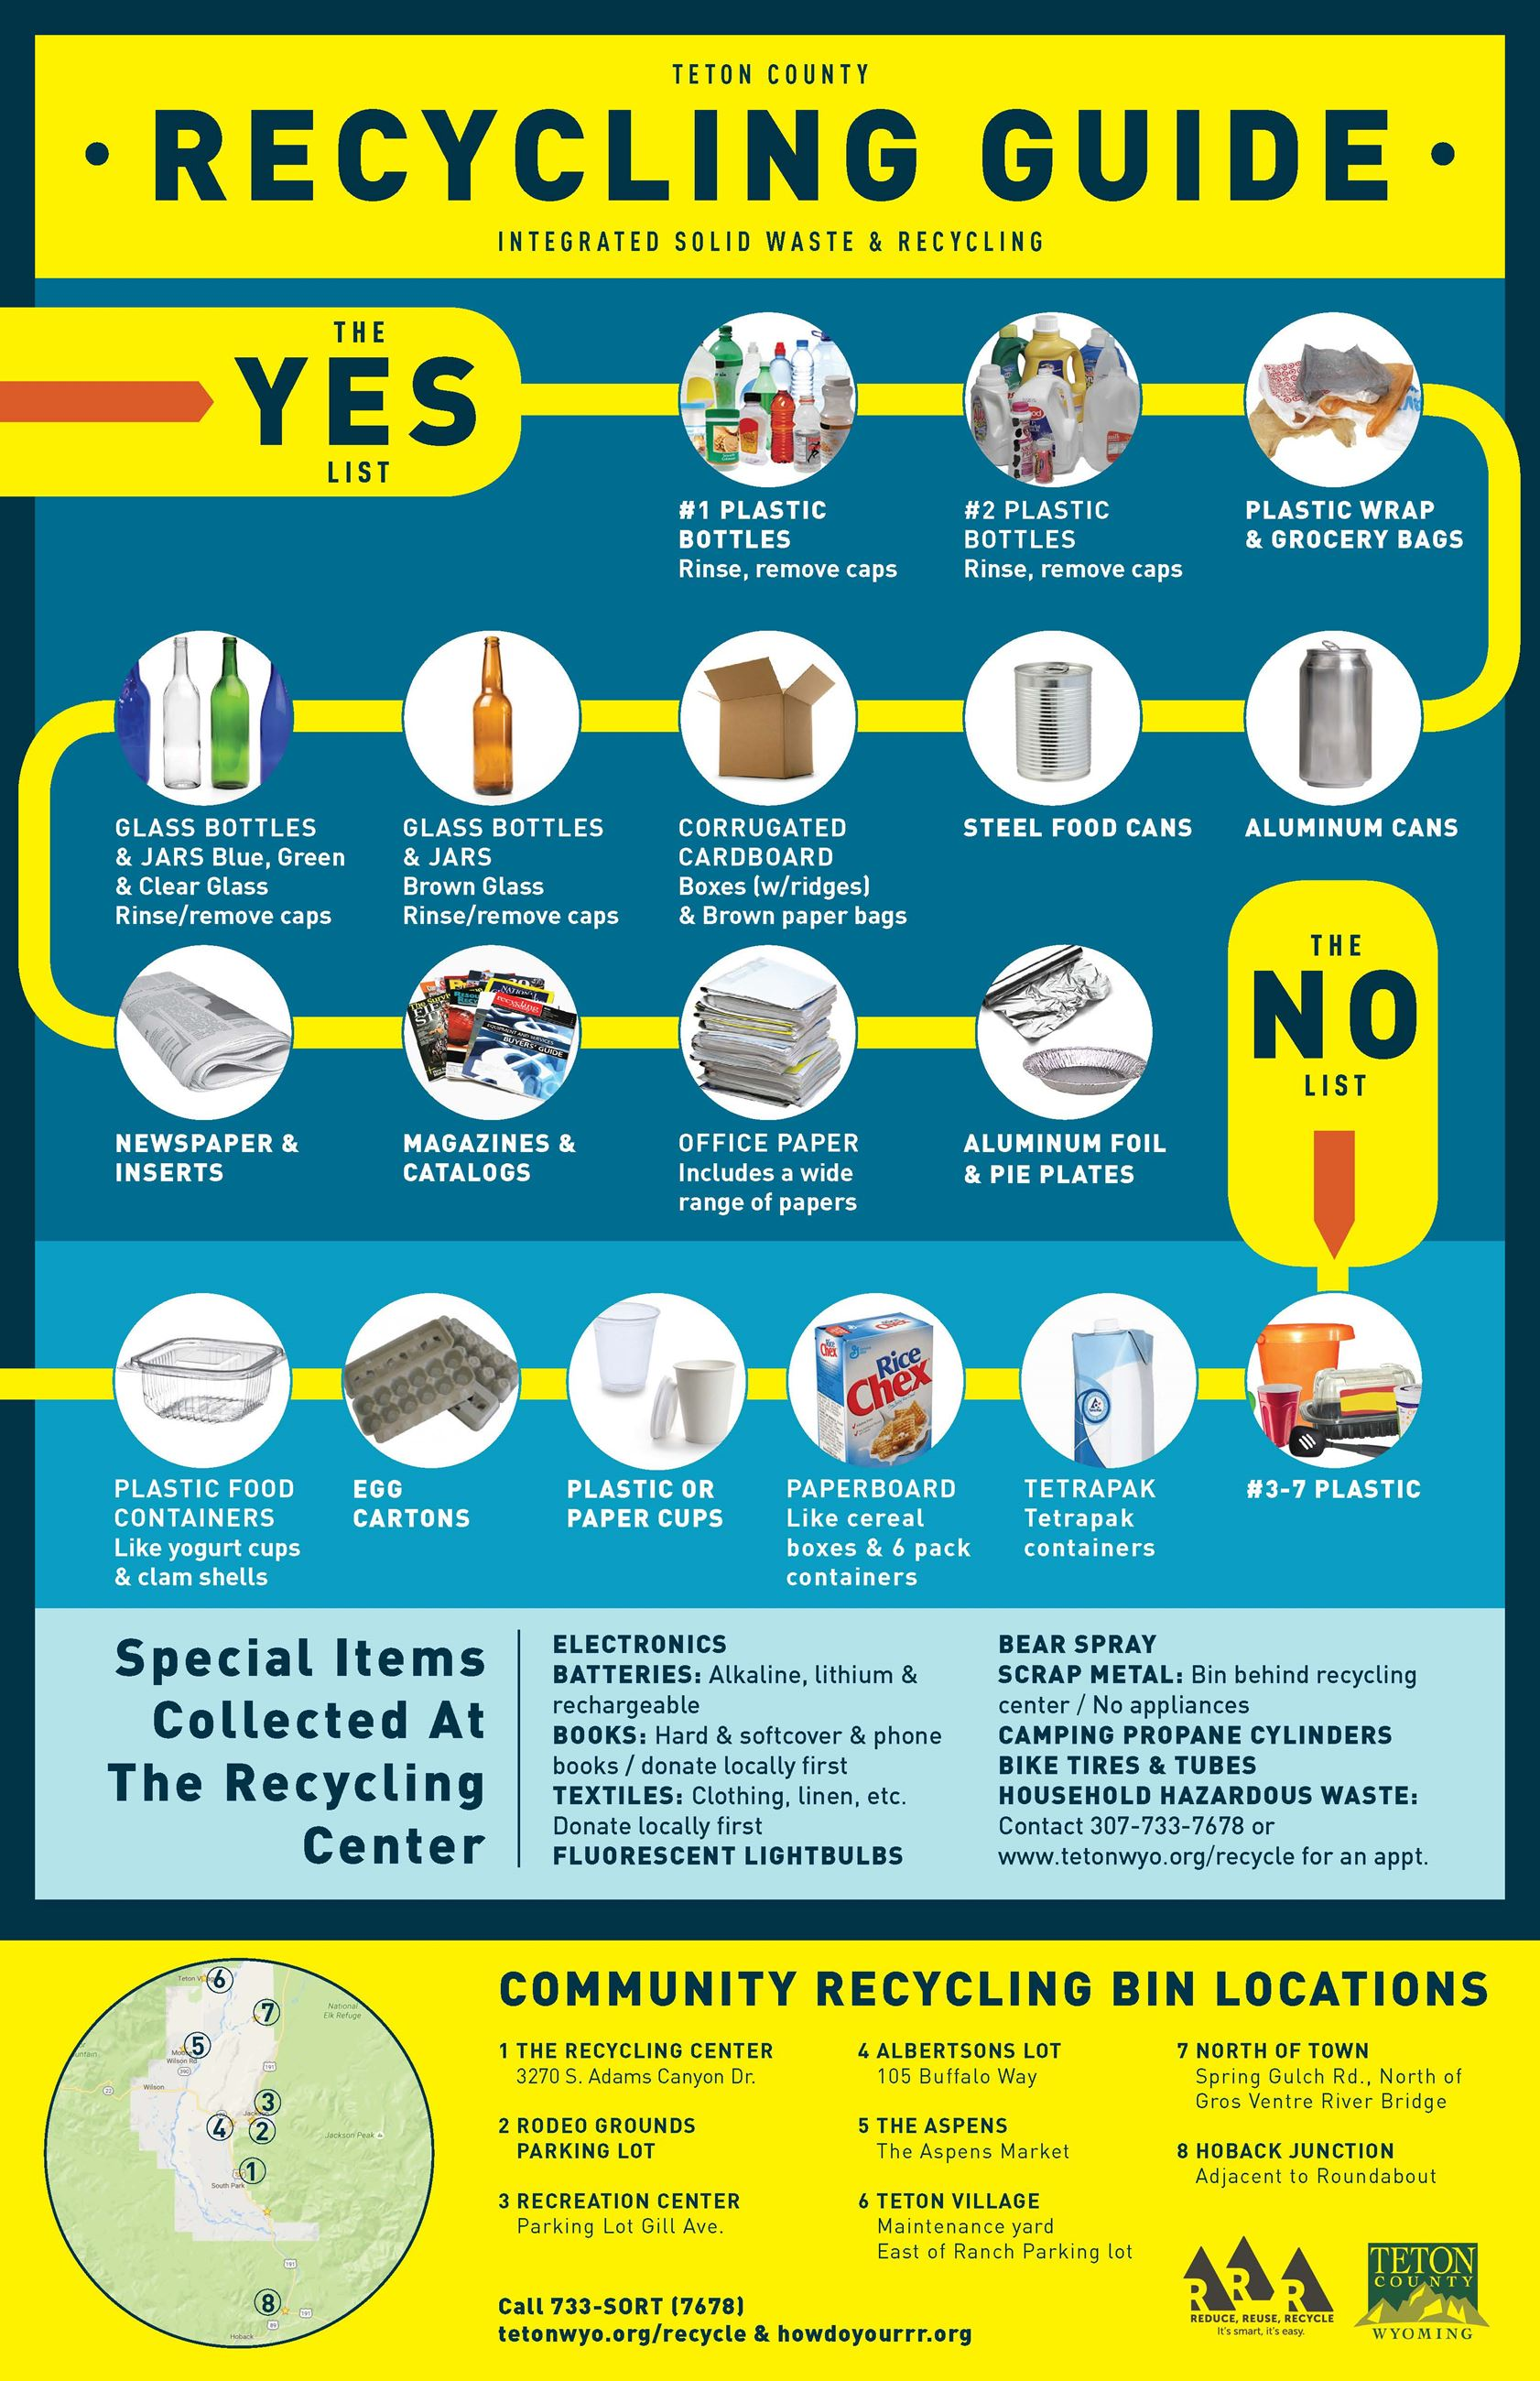 Recycling Guide chart